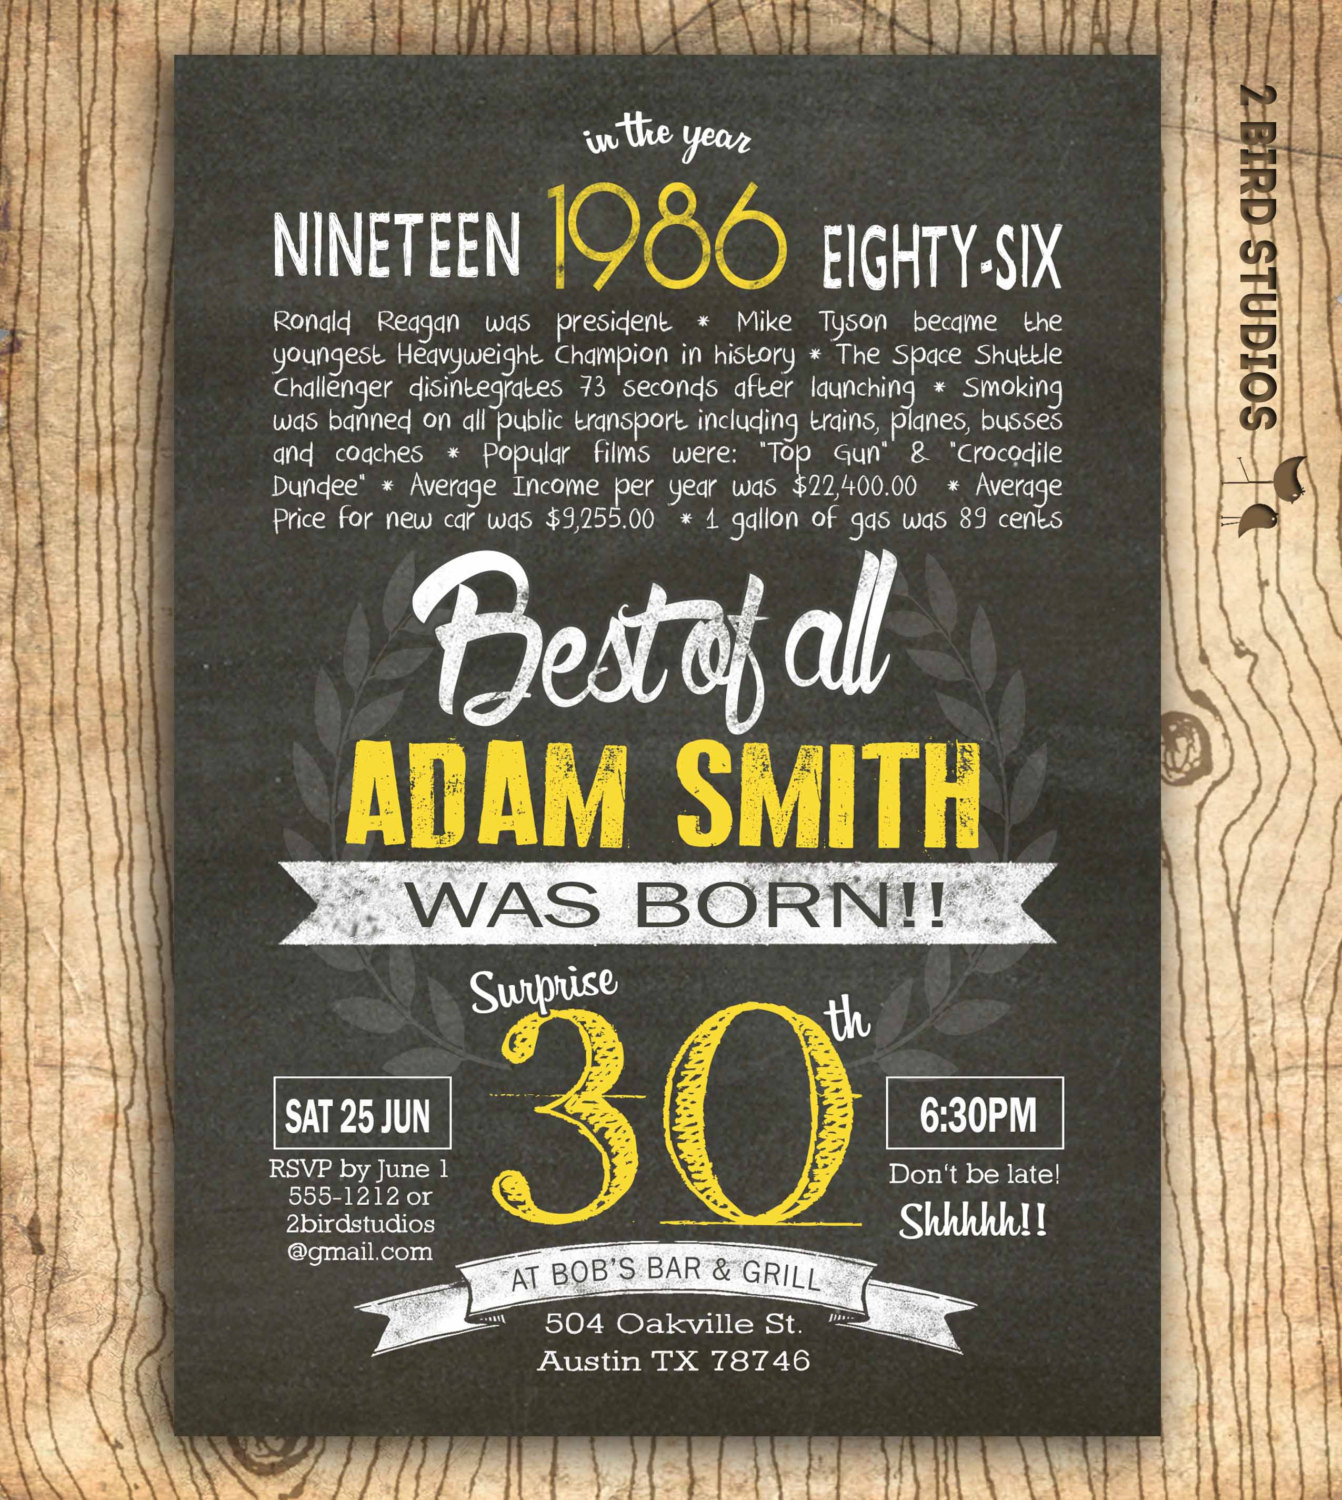 30th birthday invitation templates free download ; 30th-birthday-invitations-for-him-with-a-nice-looking-invitations-specially-designed-for-your-Birthday-Invitation-Templates-17